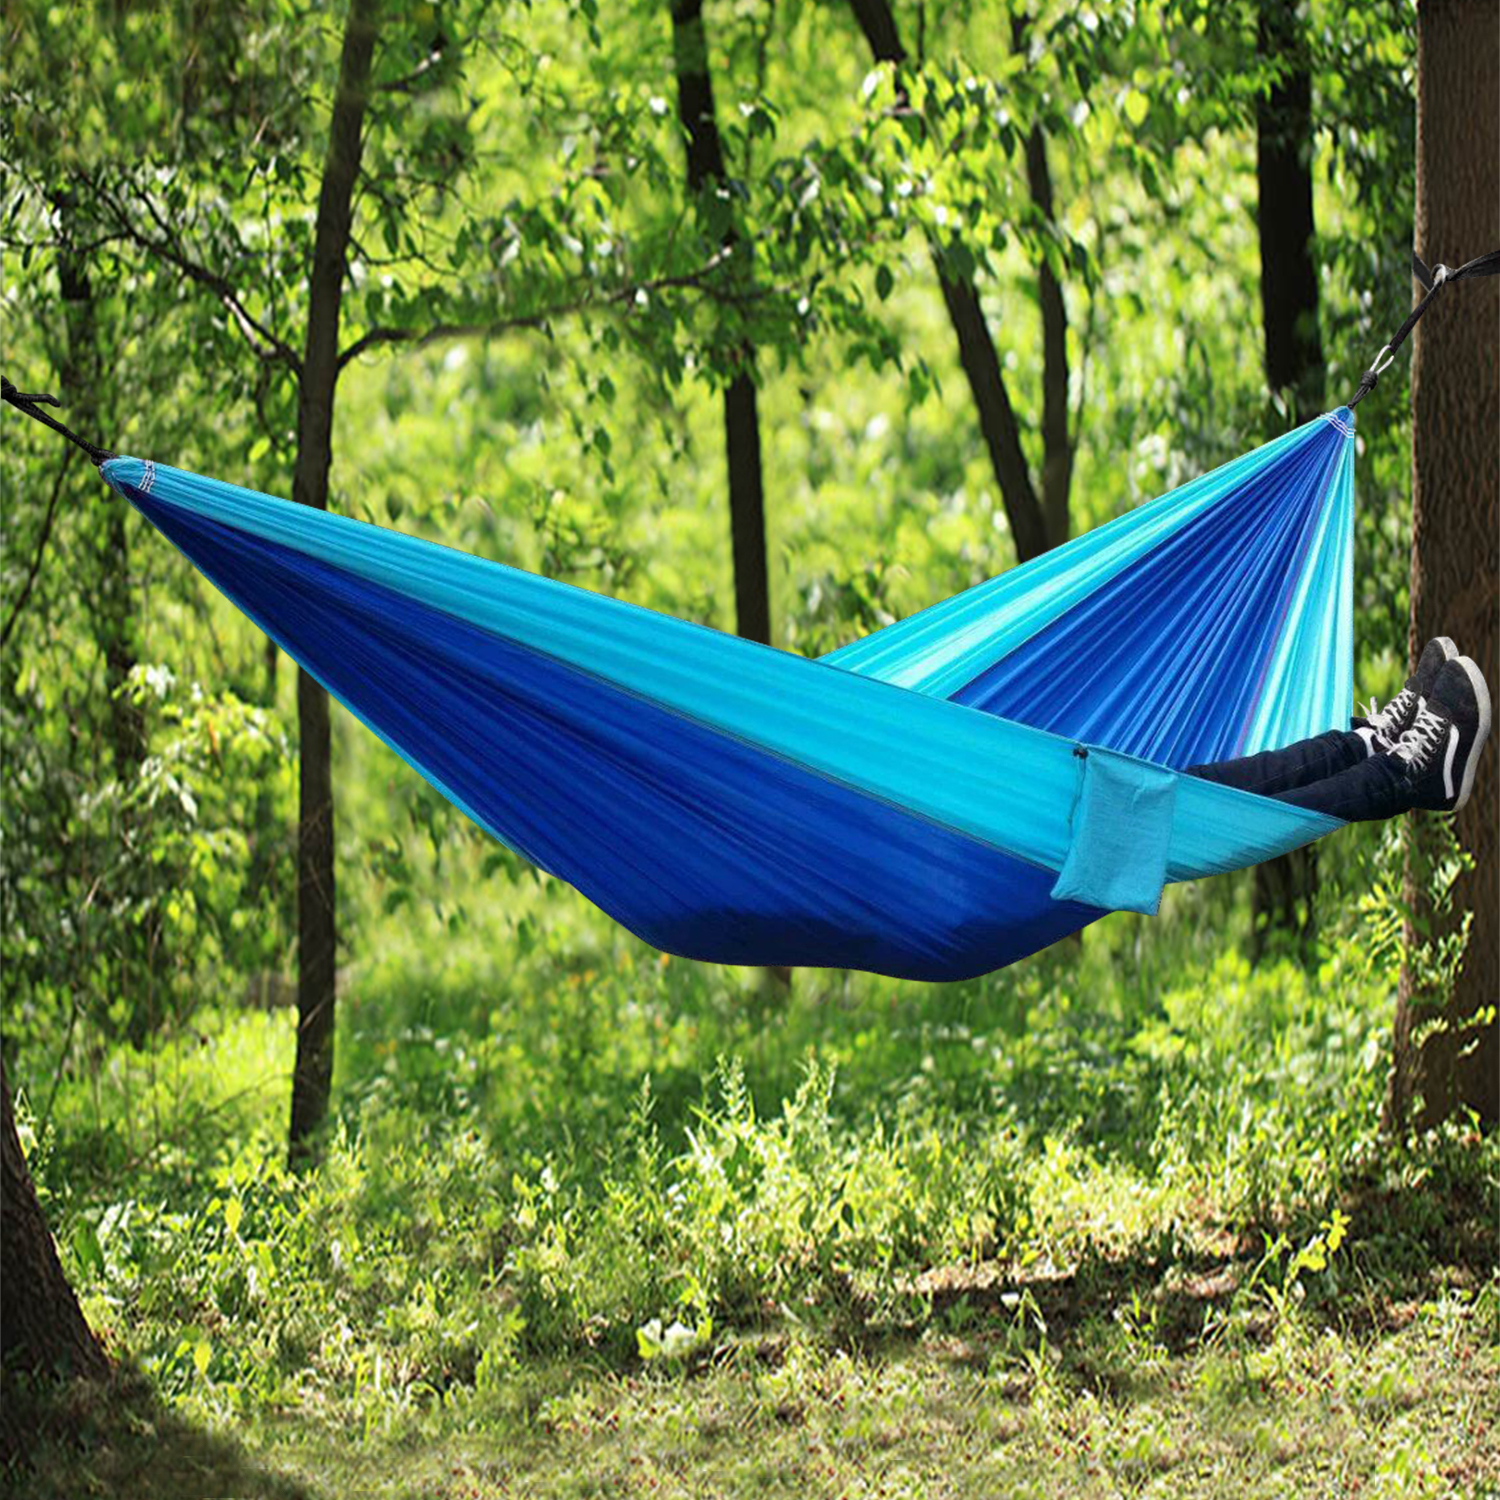 to double camouflage moon camping your inspiration black need how style outdoor the hammock relax ticket person gallery